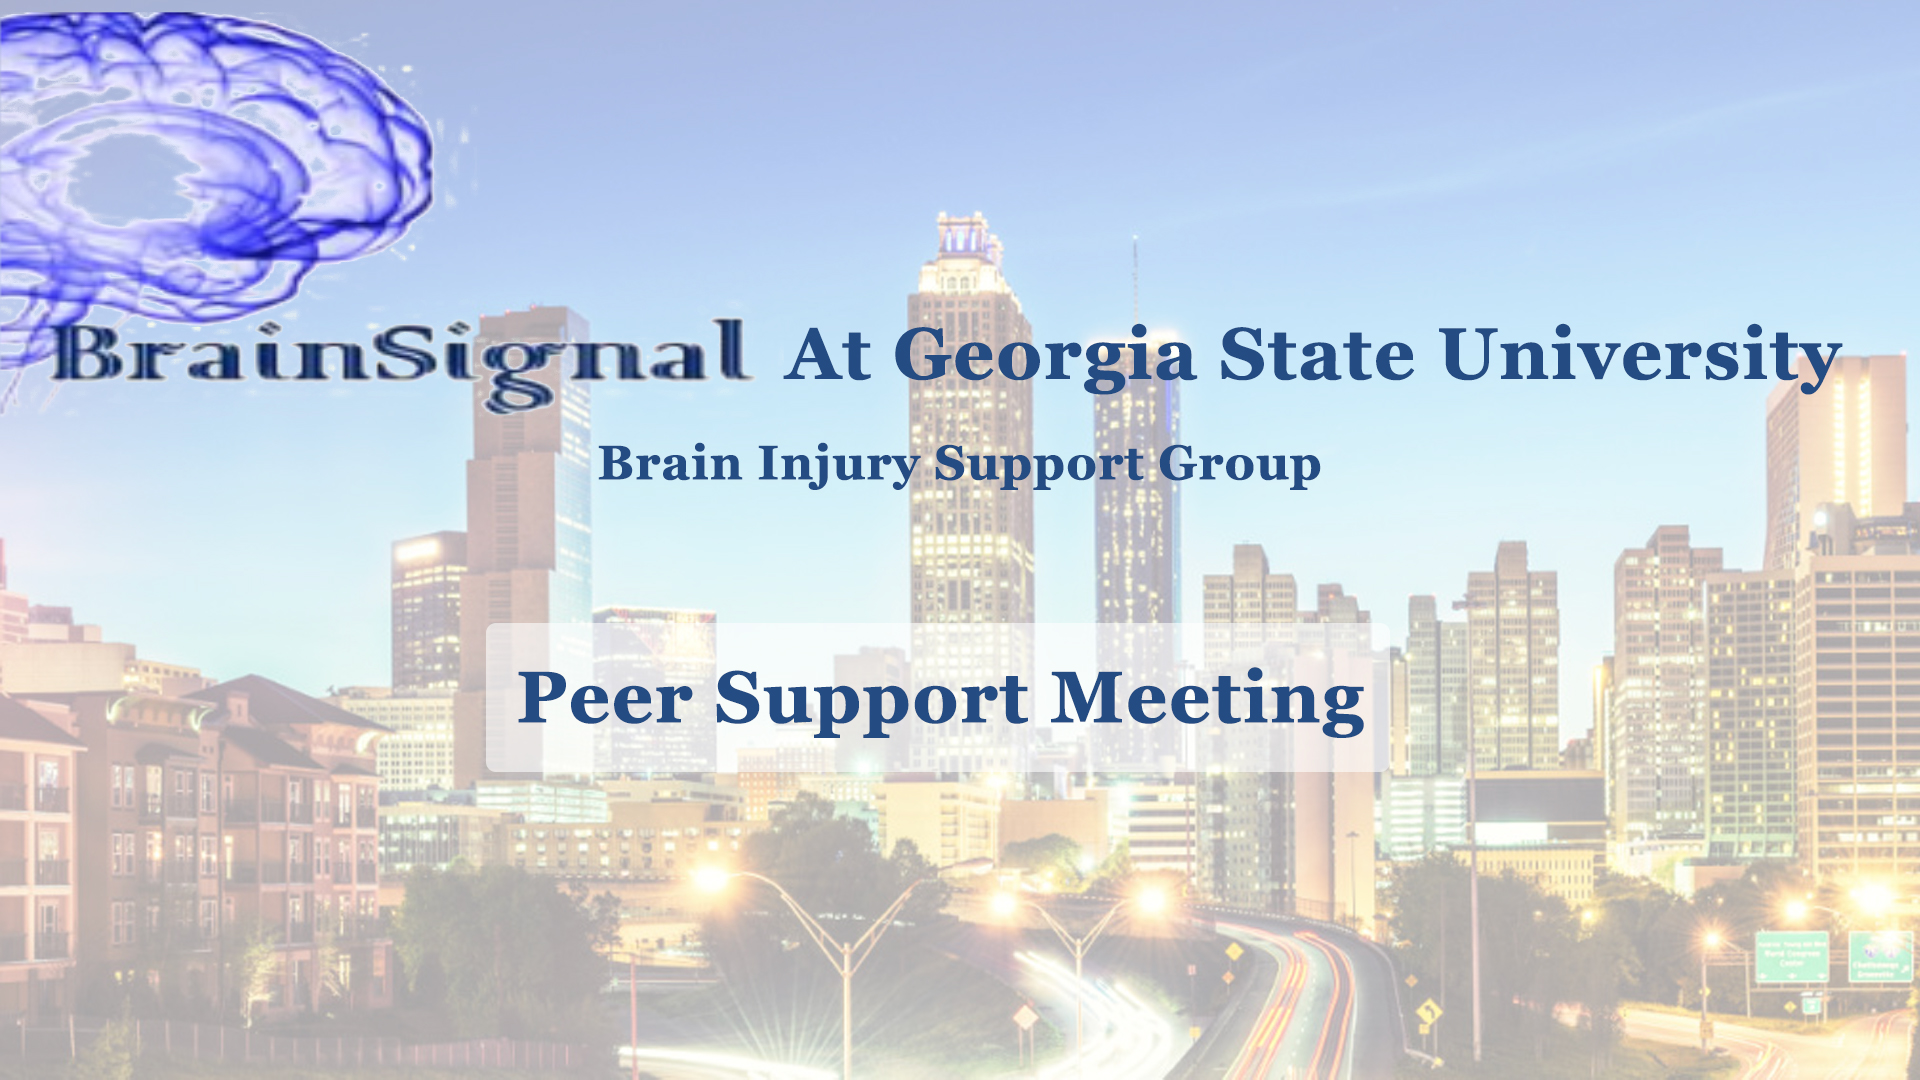 BrainSignal's August 8th Peer Support Meeting